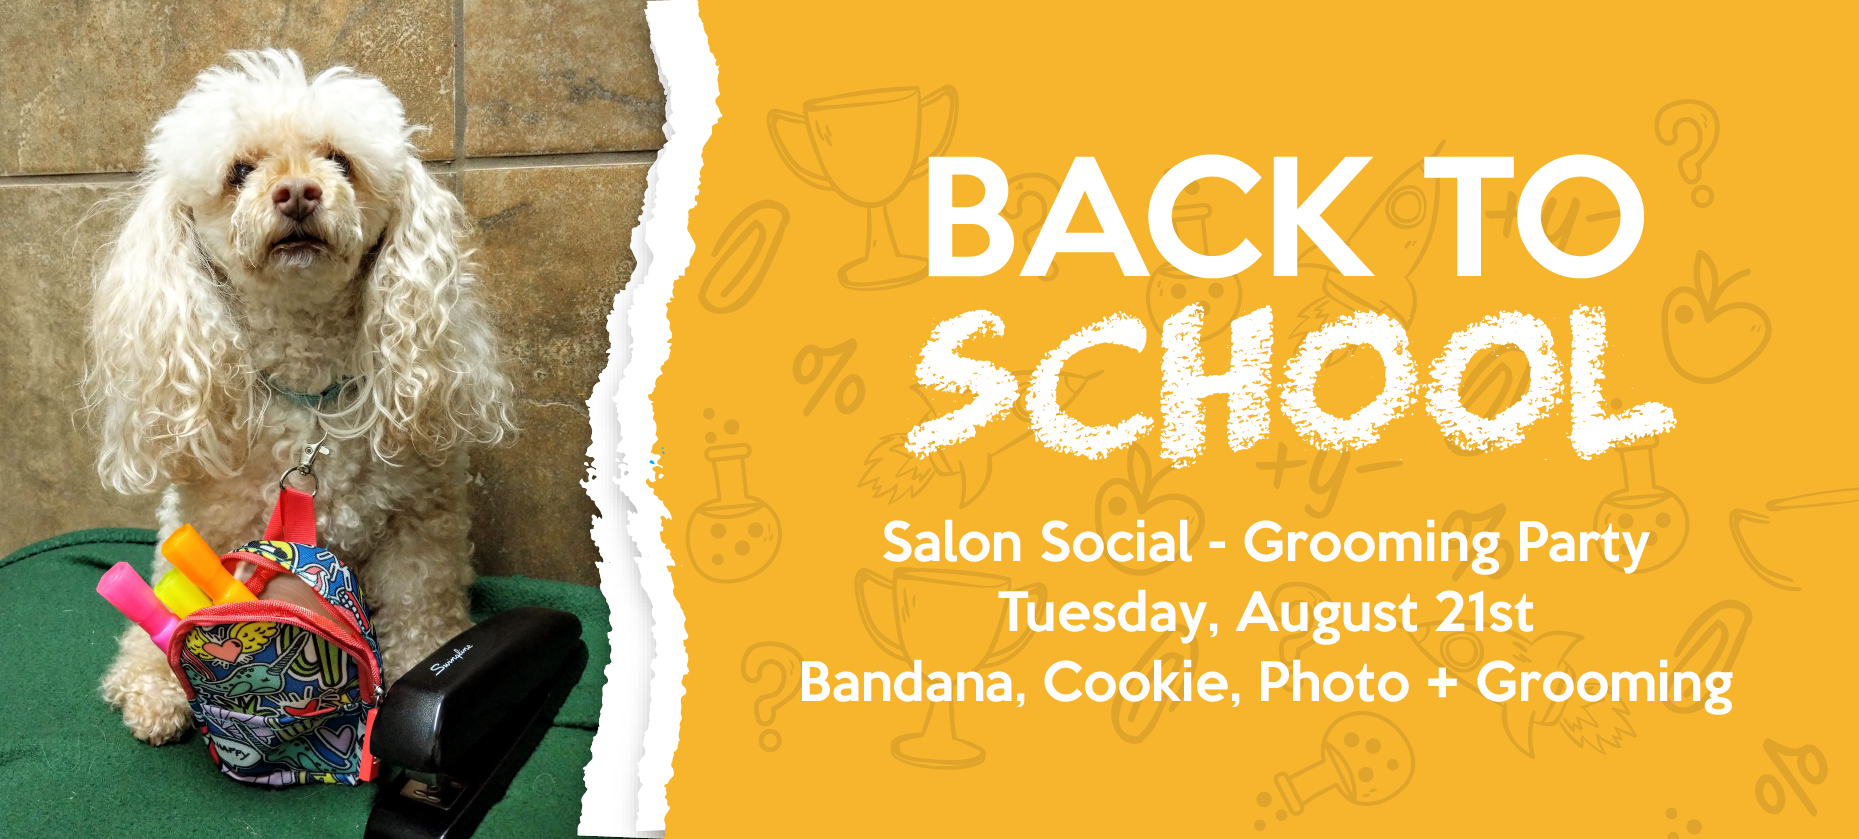 Dog Grooming Party, Back to School